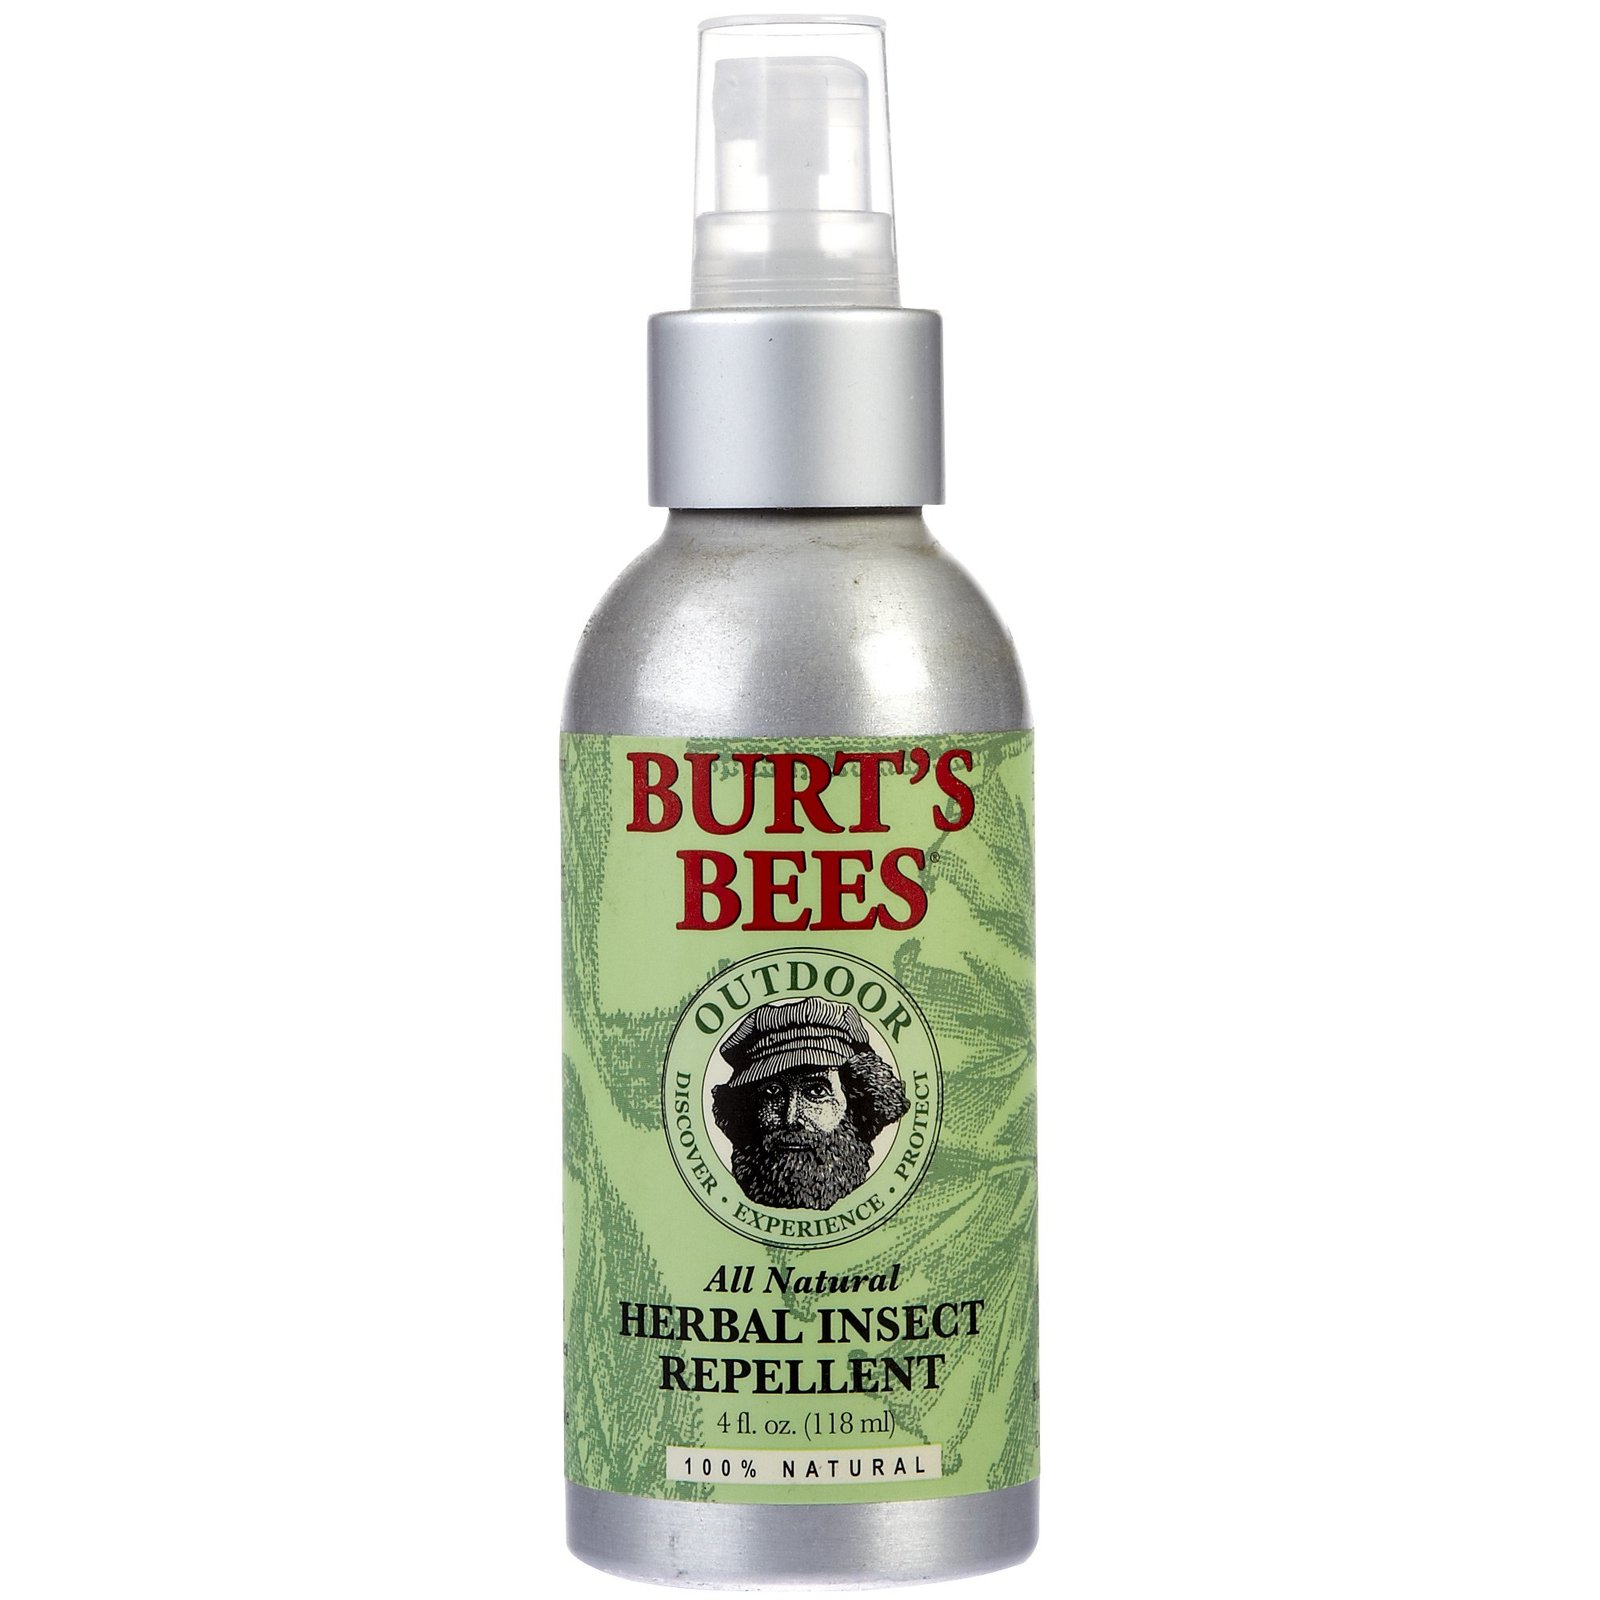 Burt's Bees All Natural Herbal Insect Repellent